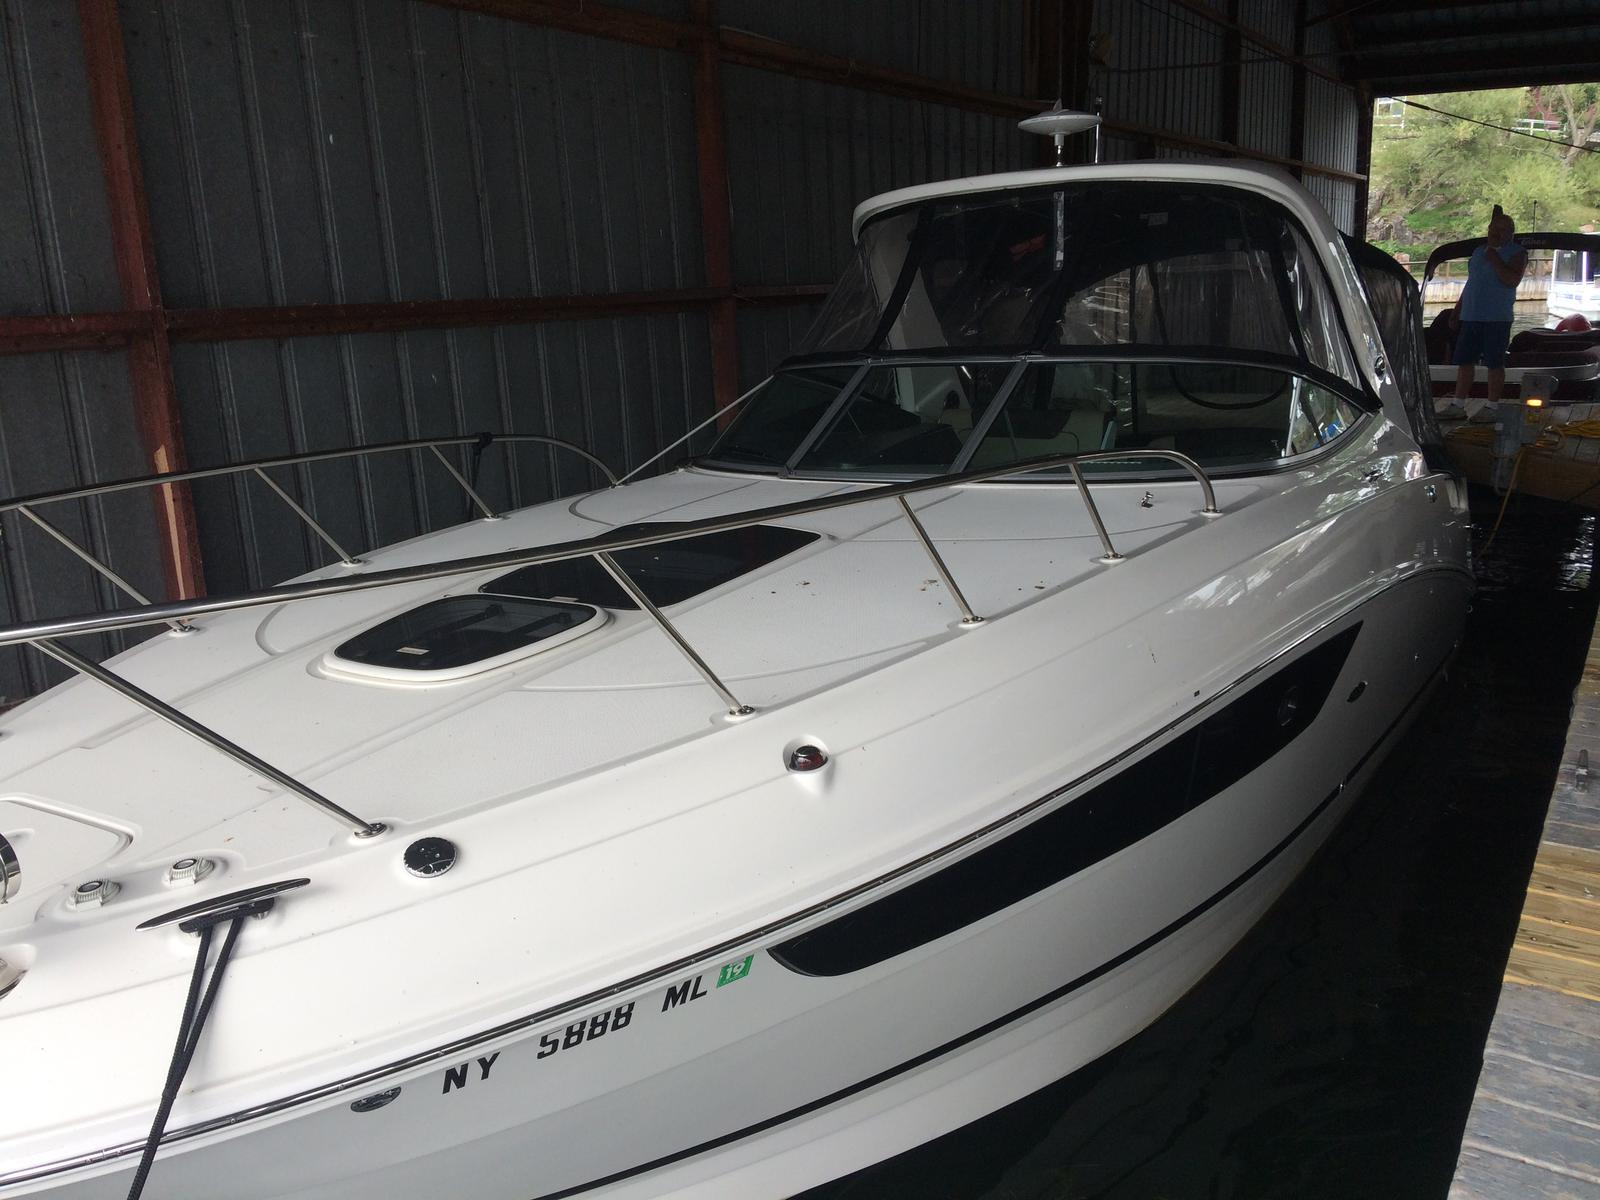 USED 2015 Sea Ray 310 Sundancer - Hutchinson's Boat Works